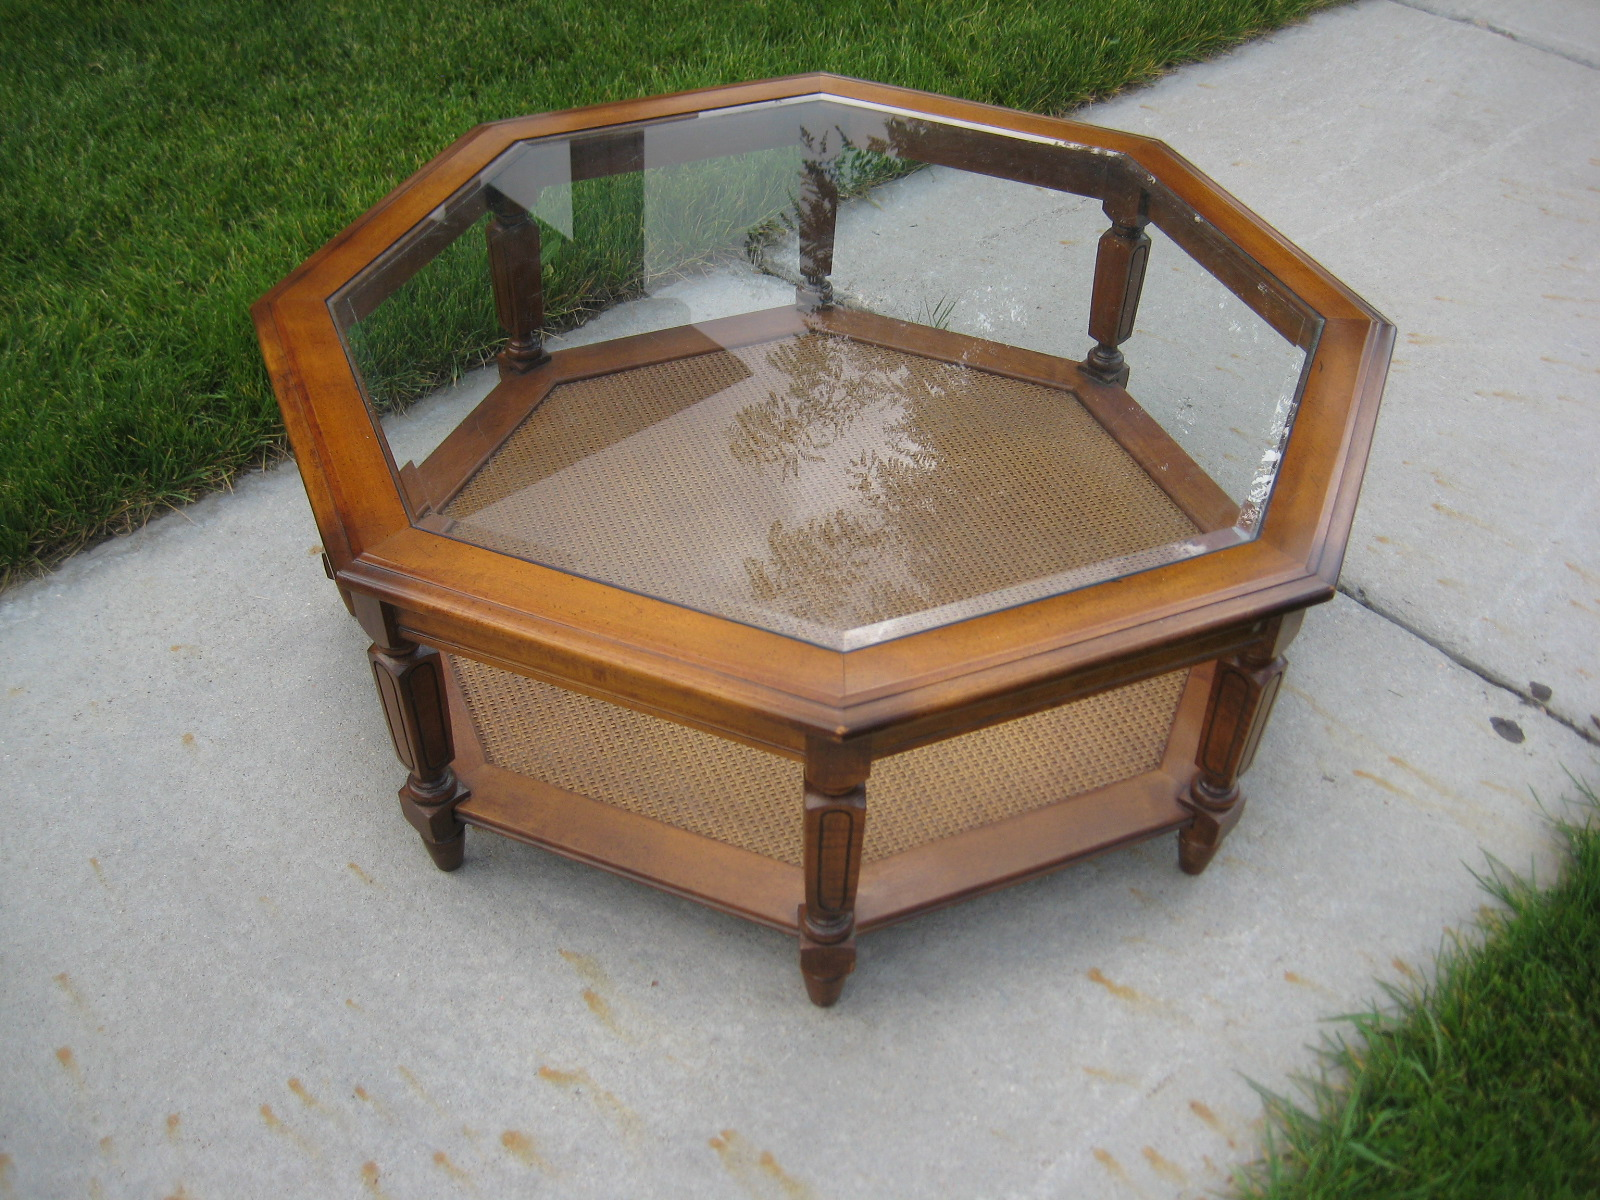 Thornton Moving Sale: Octagon Coffee Table - $50 obo